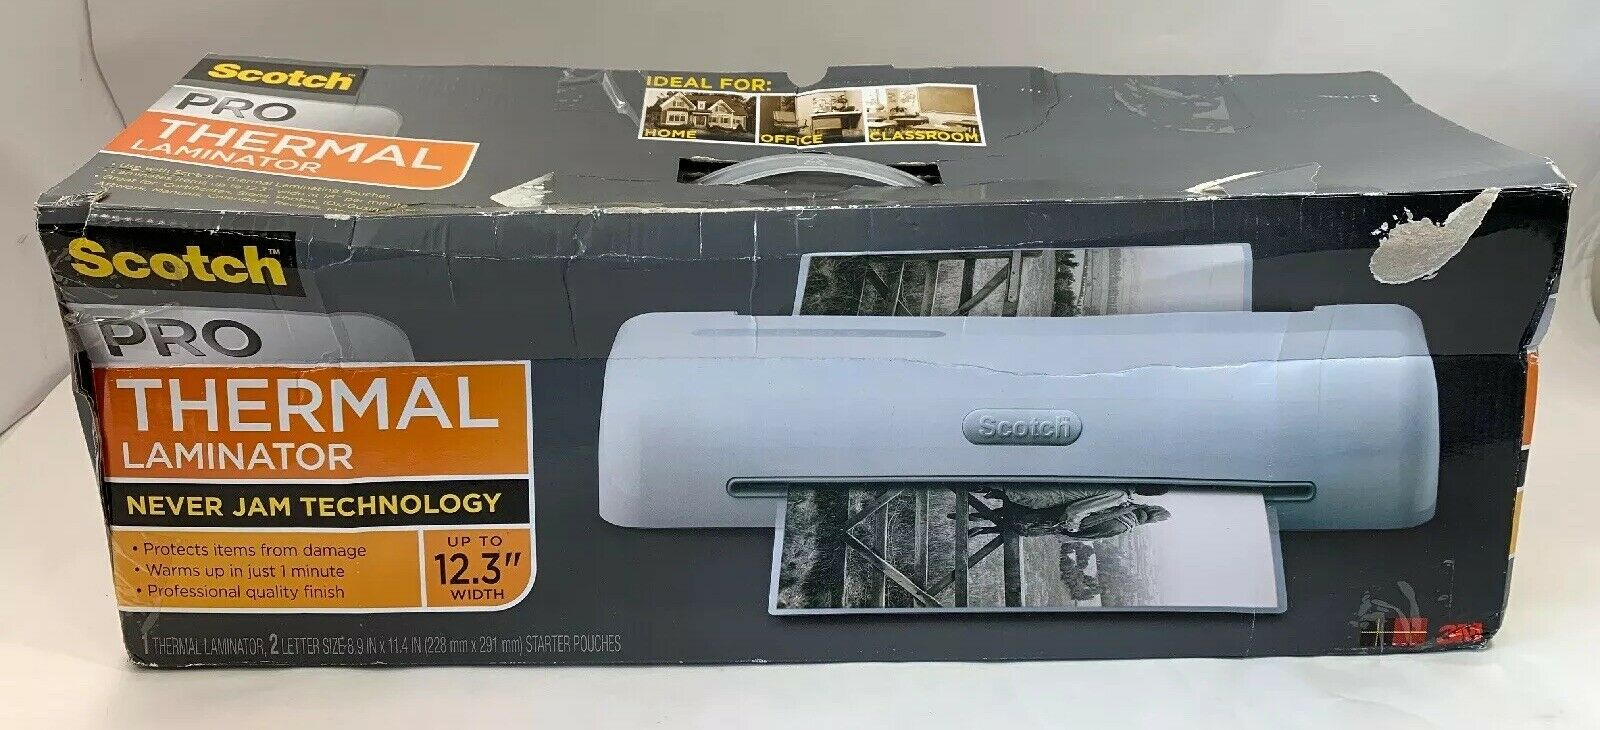 "3M Scotch PRO Thermal Laminator Up To 12.3"" Width -Never Jams Technology -NEW"